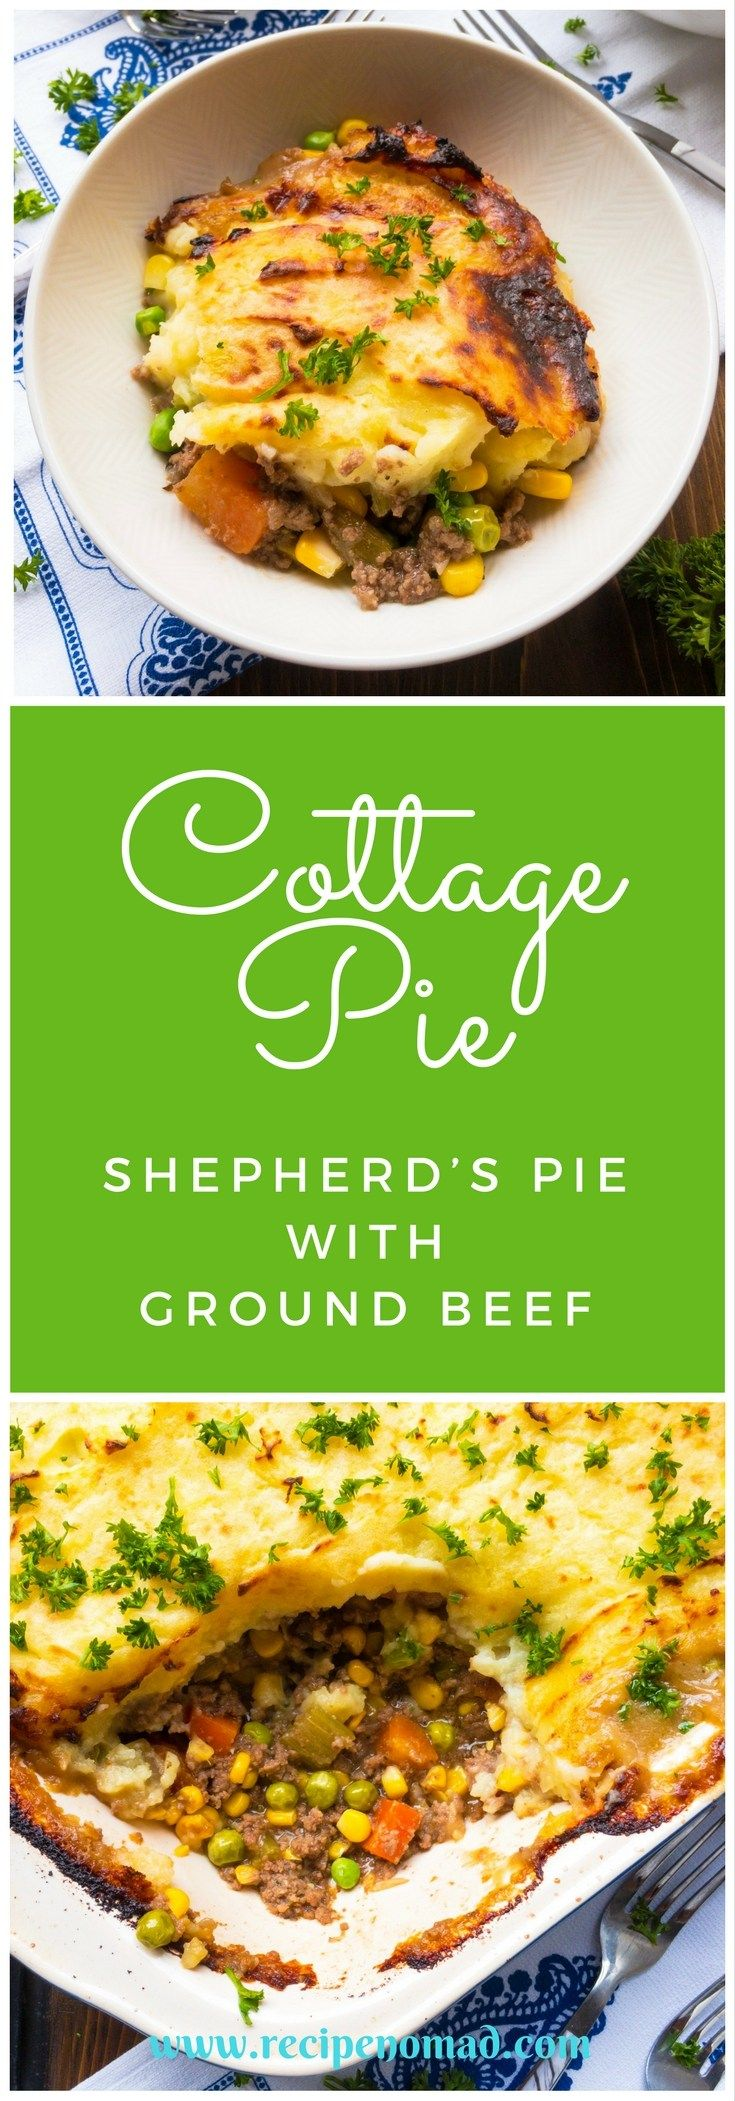 Cottage Pie (Shepherd's Pie with Ground Beef) | Recipe Nomad  Unlike Shepherd's Pie which is made with lamb, Cottage Pie is made with ground beef. Cottage Pie is a packed with ground beef, carrots, celery, peas and corn and topped with a thick layer of mashed potatoes. The perfect meal to warm you up on a cold day!